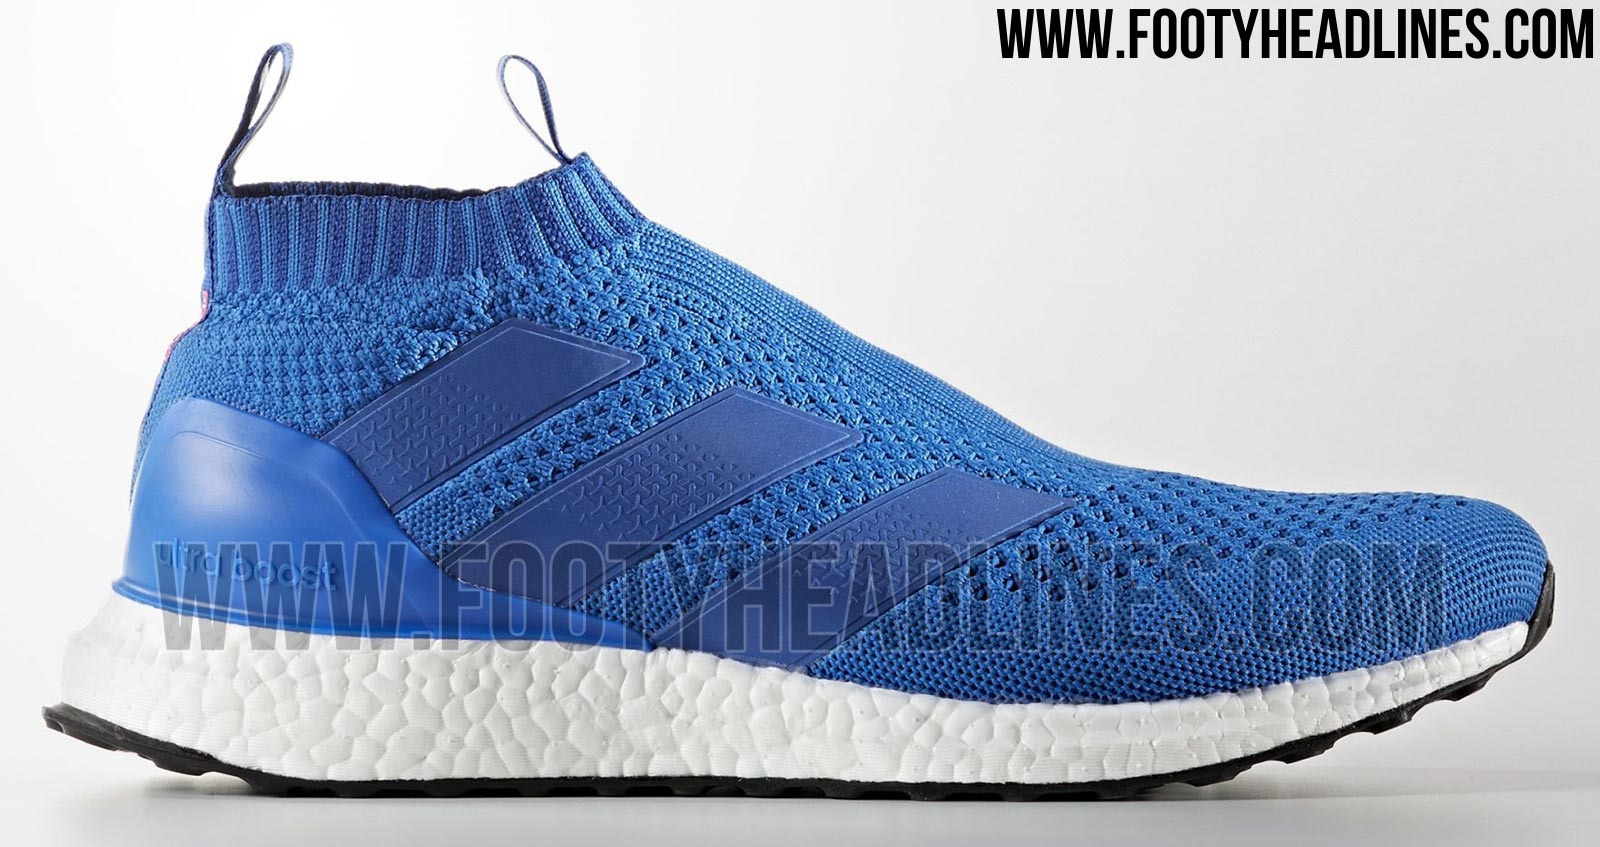 blue blast adidas ace 16 purecontrol ultra boost revealed. Black Bedroom Furniture Sets. Home Design Ideas